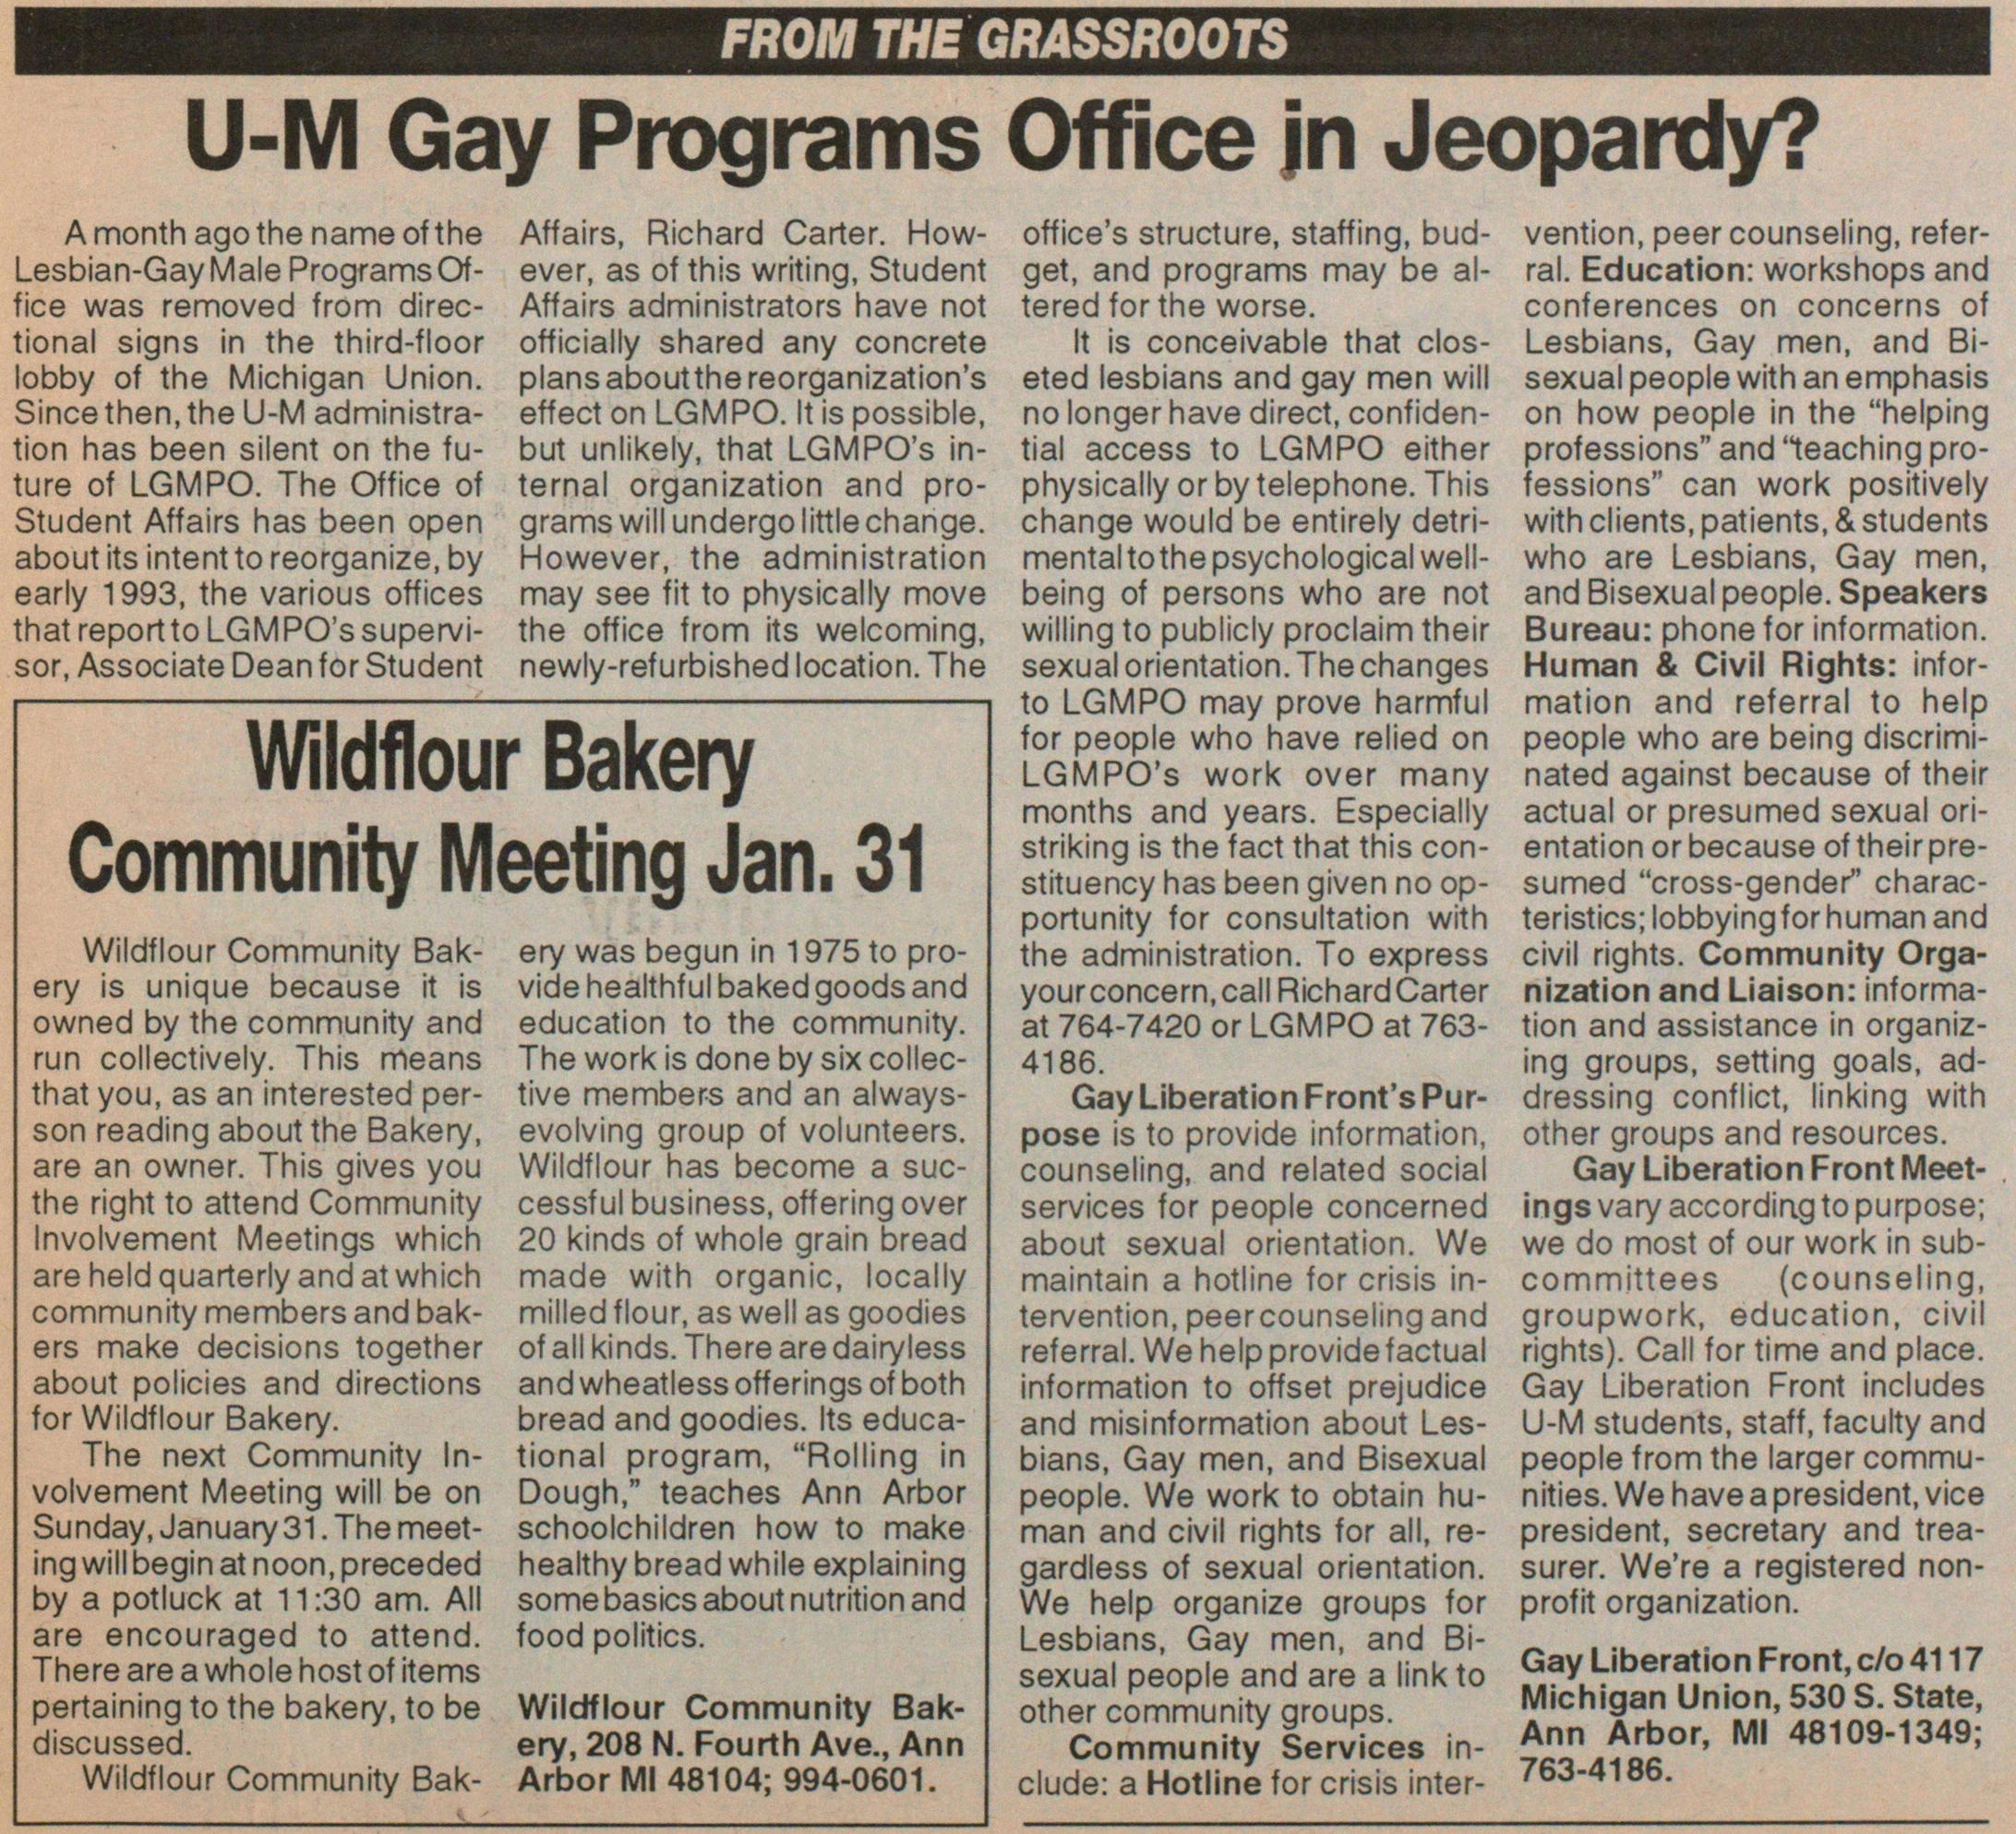 U-m Gay Programs Office In Jeopardy? image